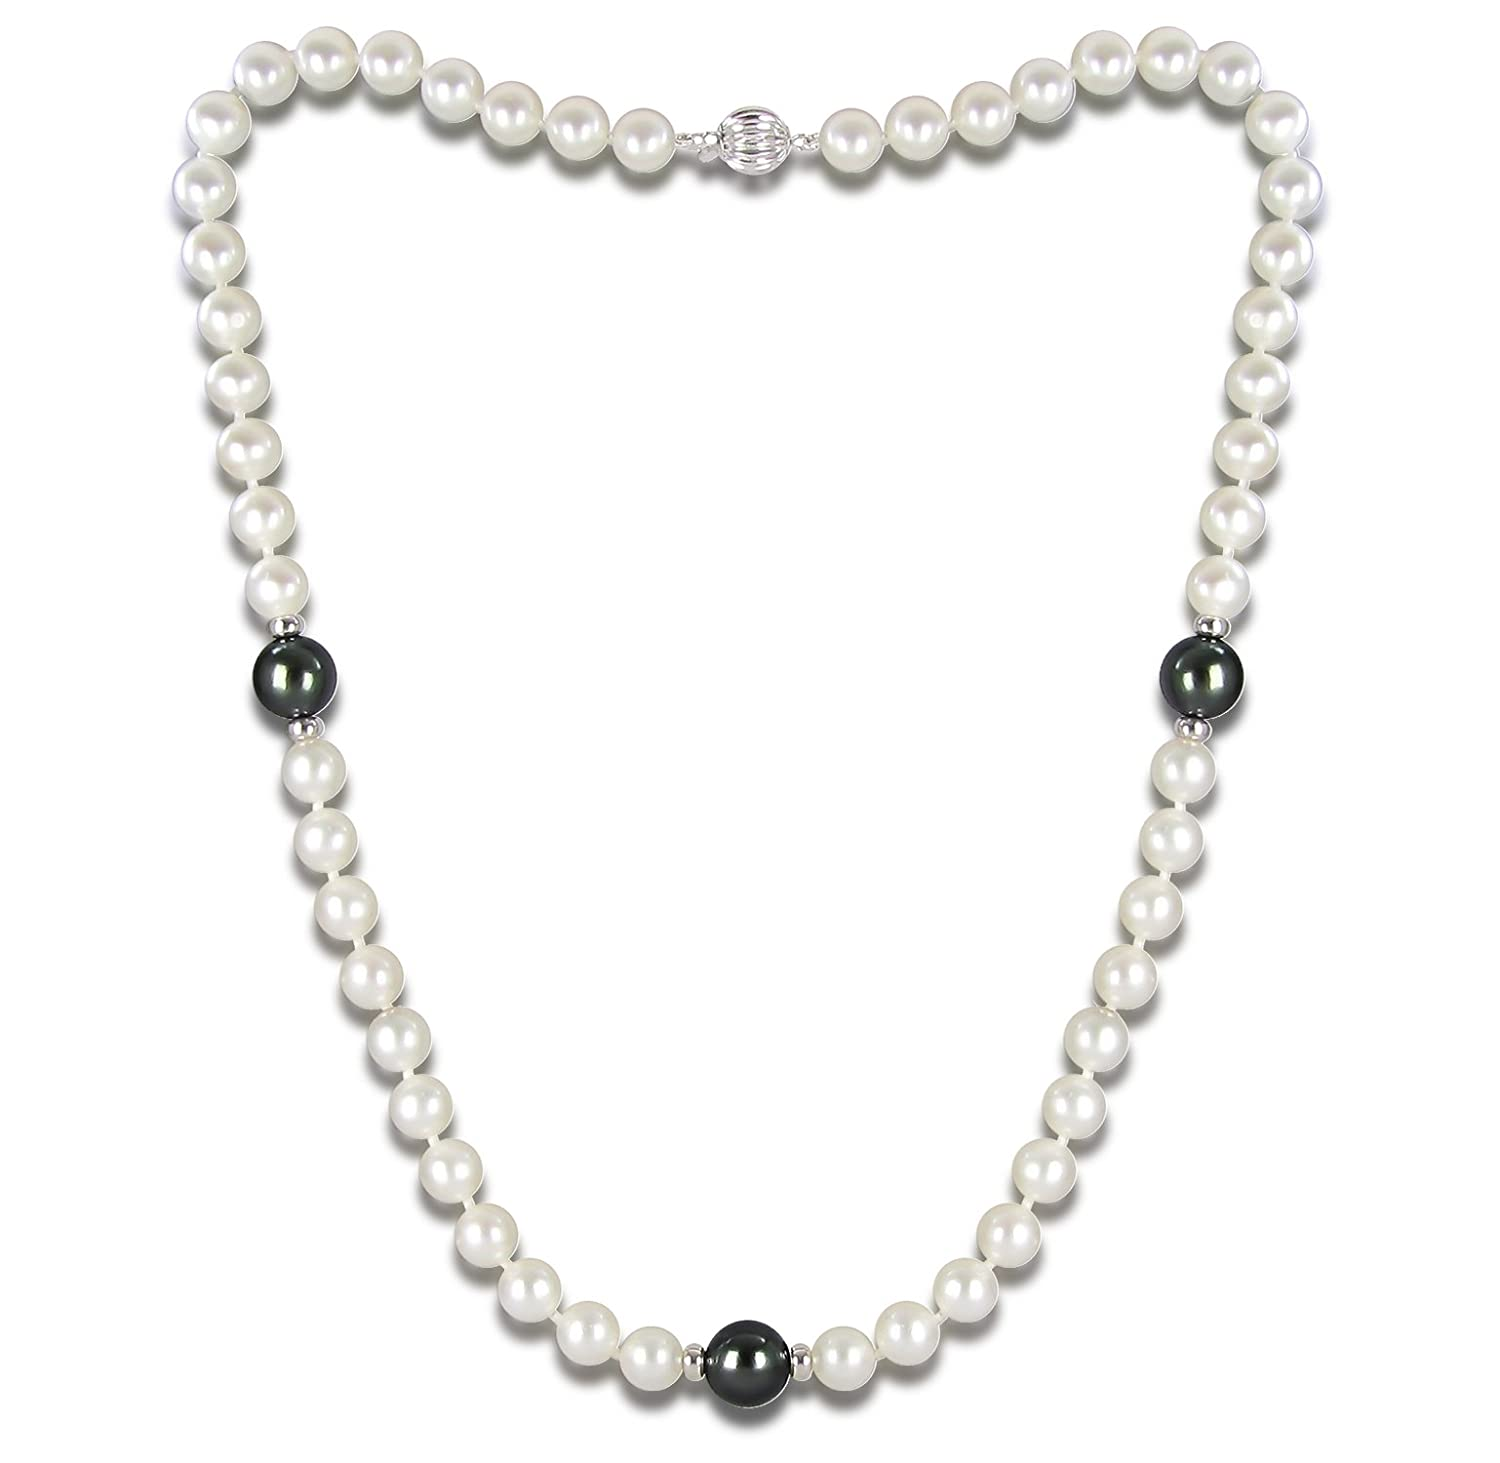 14k White Gold 7-7.5mm Freshwater Cultured and 3 pcs 9-9.5mm Tahitian Cultured Pearl Necklace 18